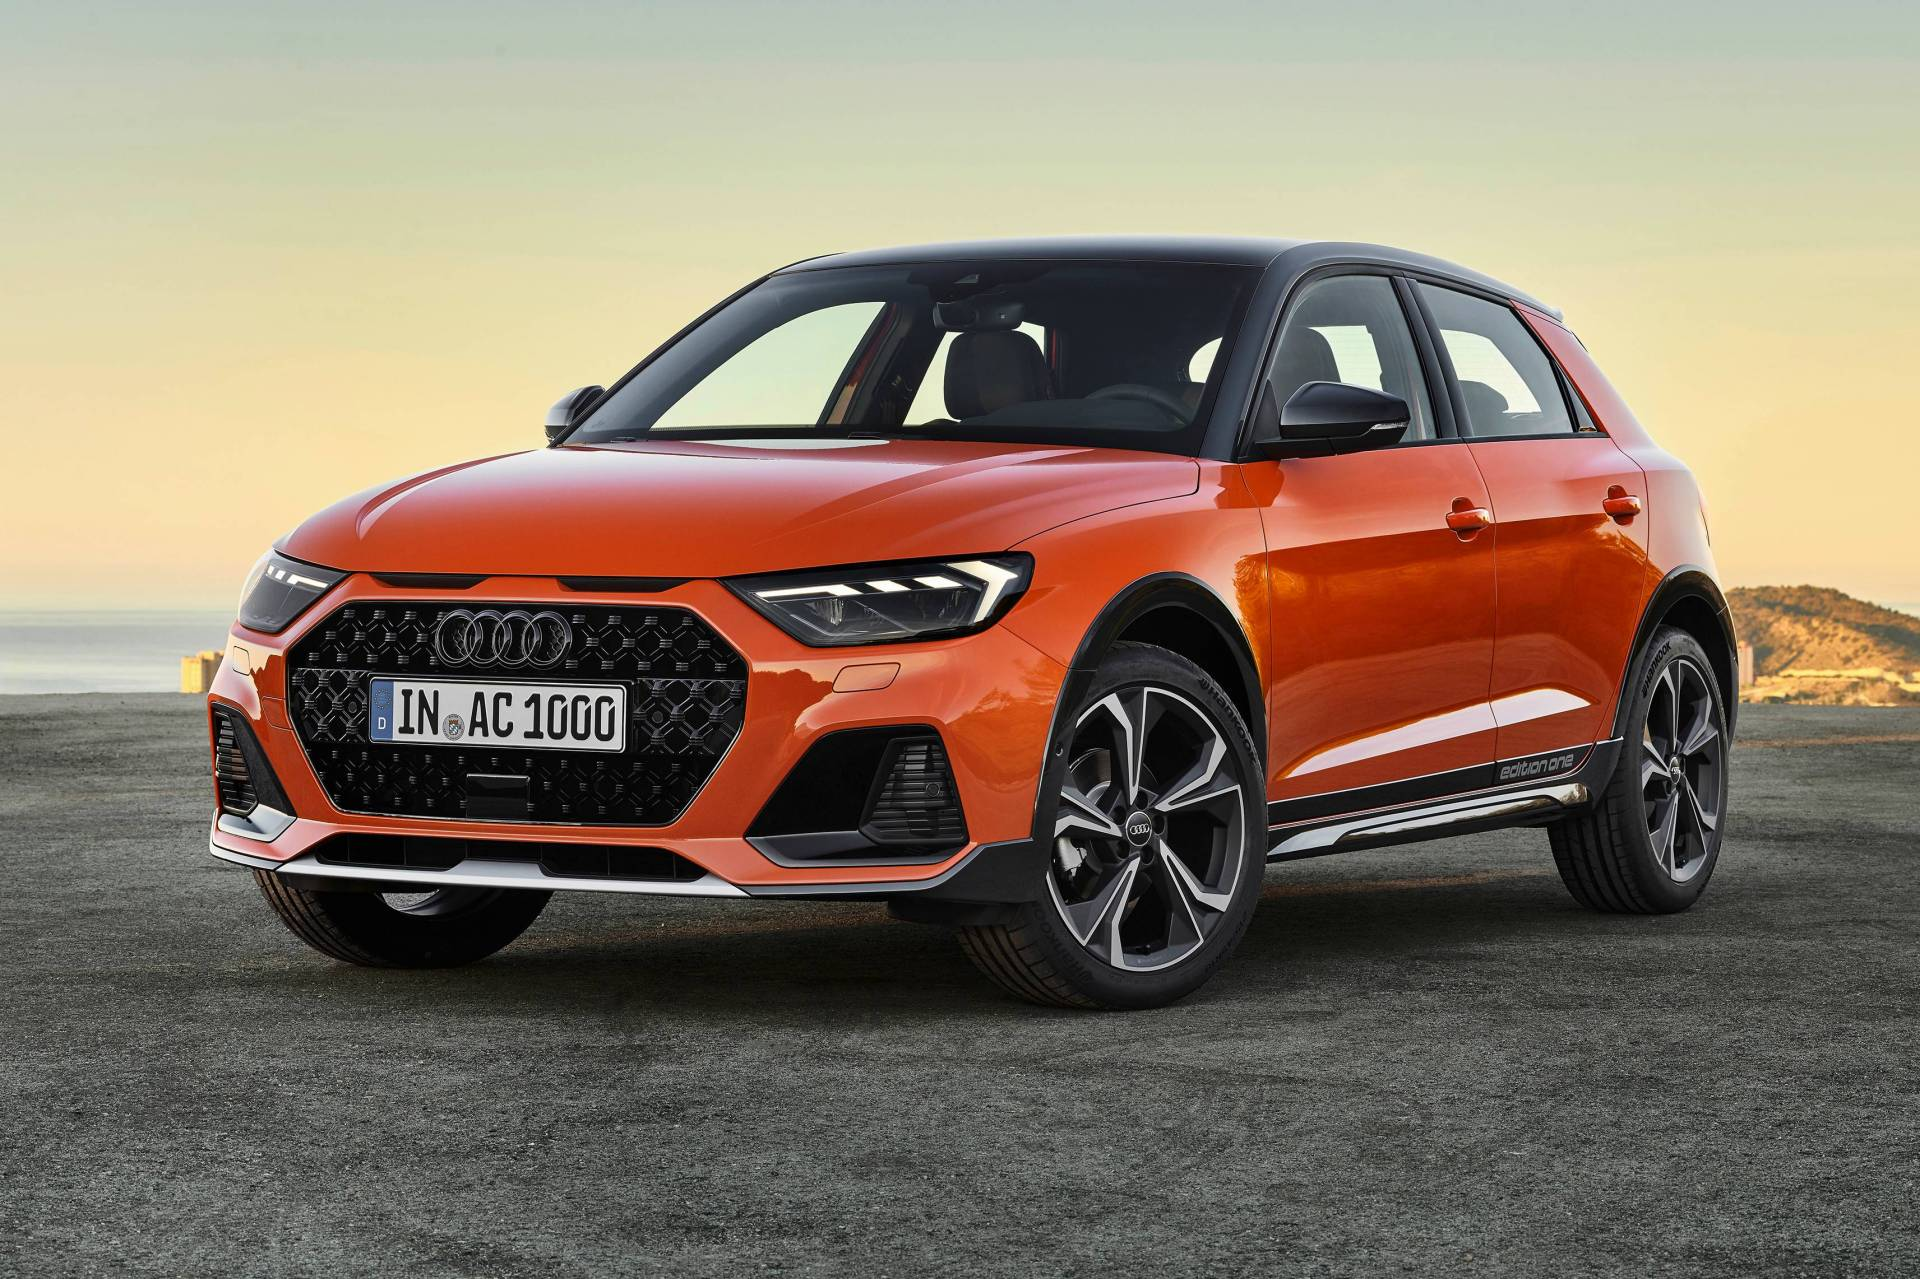 The new Audi A1 'citycarver' is a lightly raised city auto